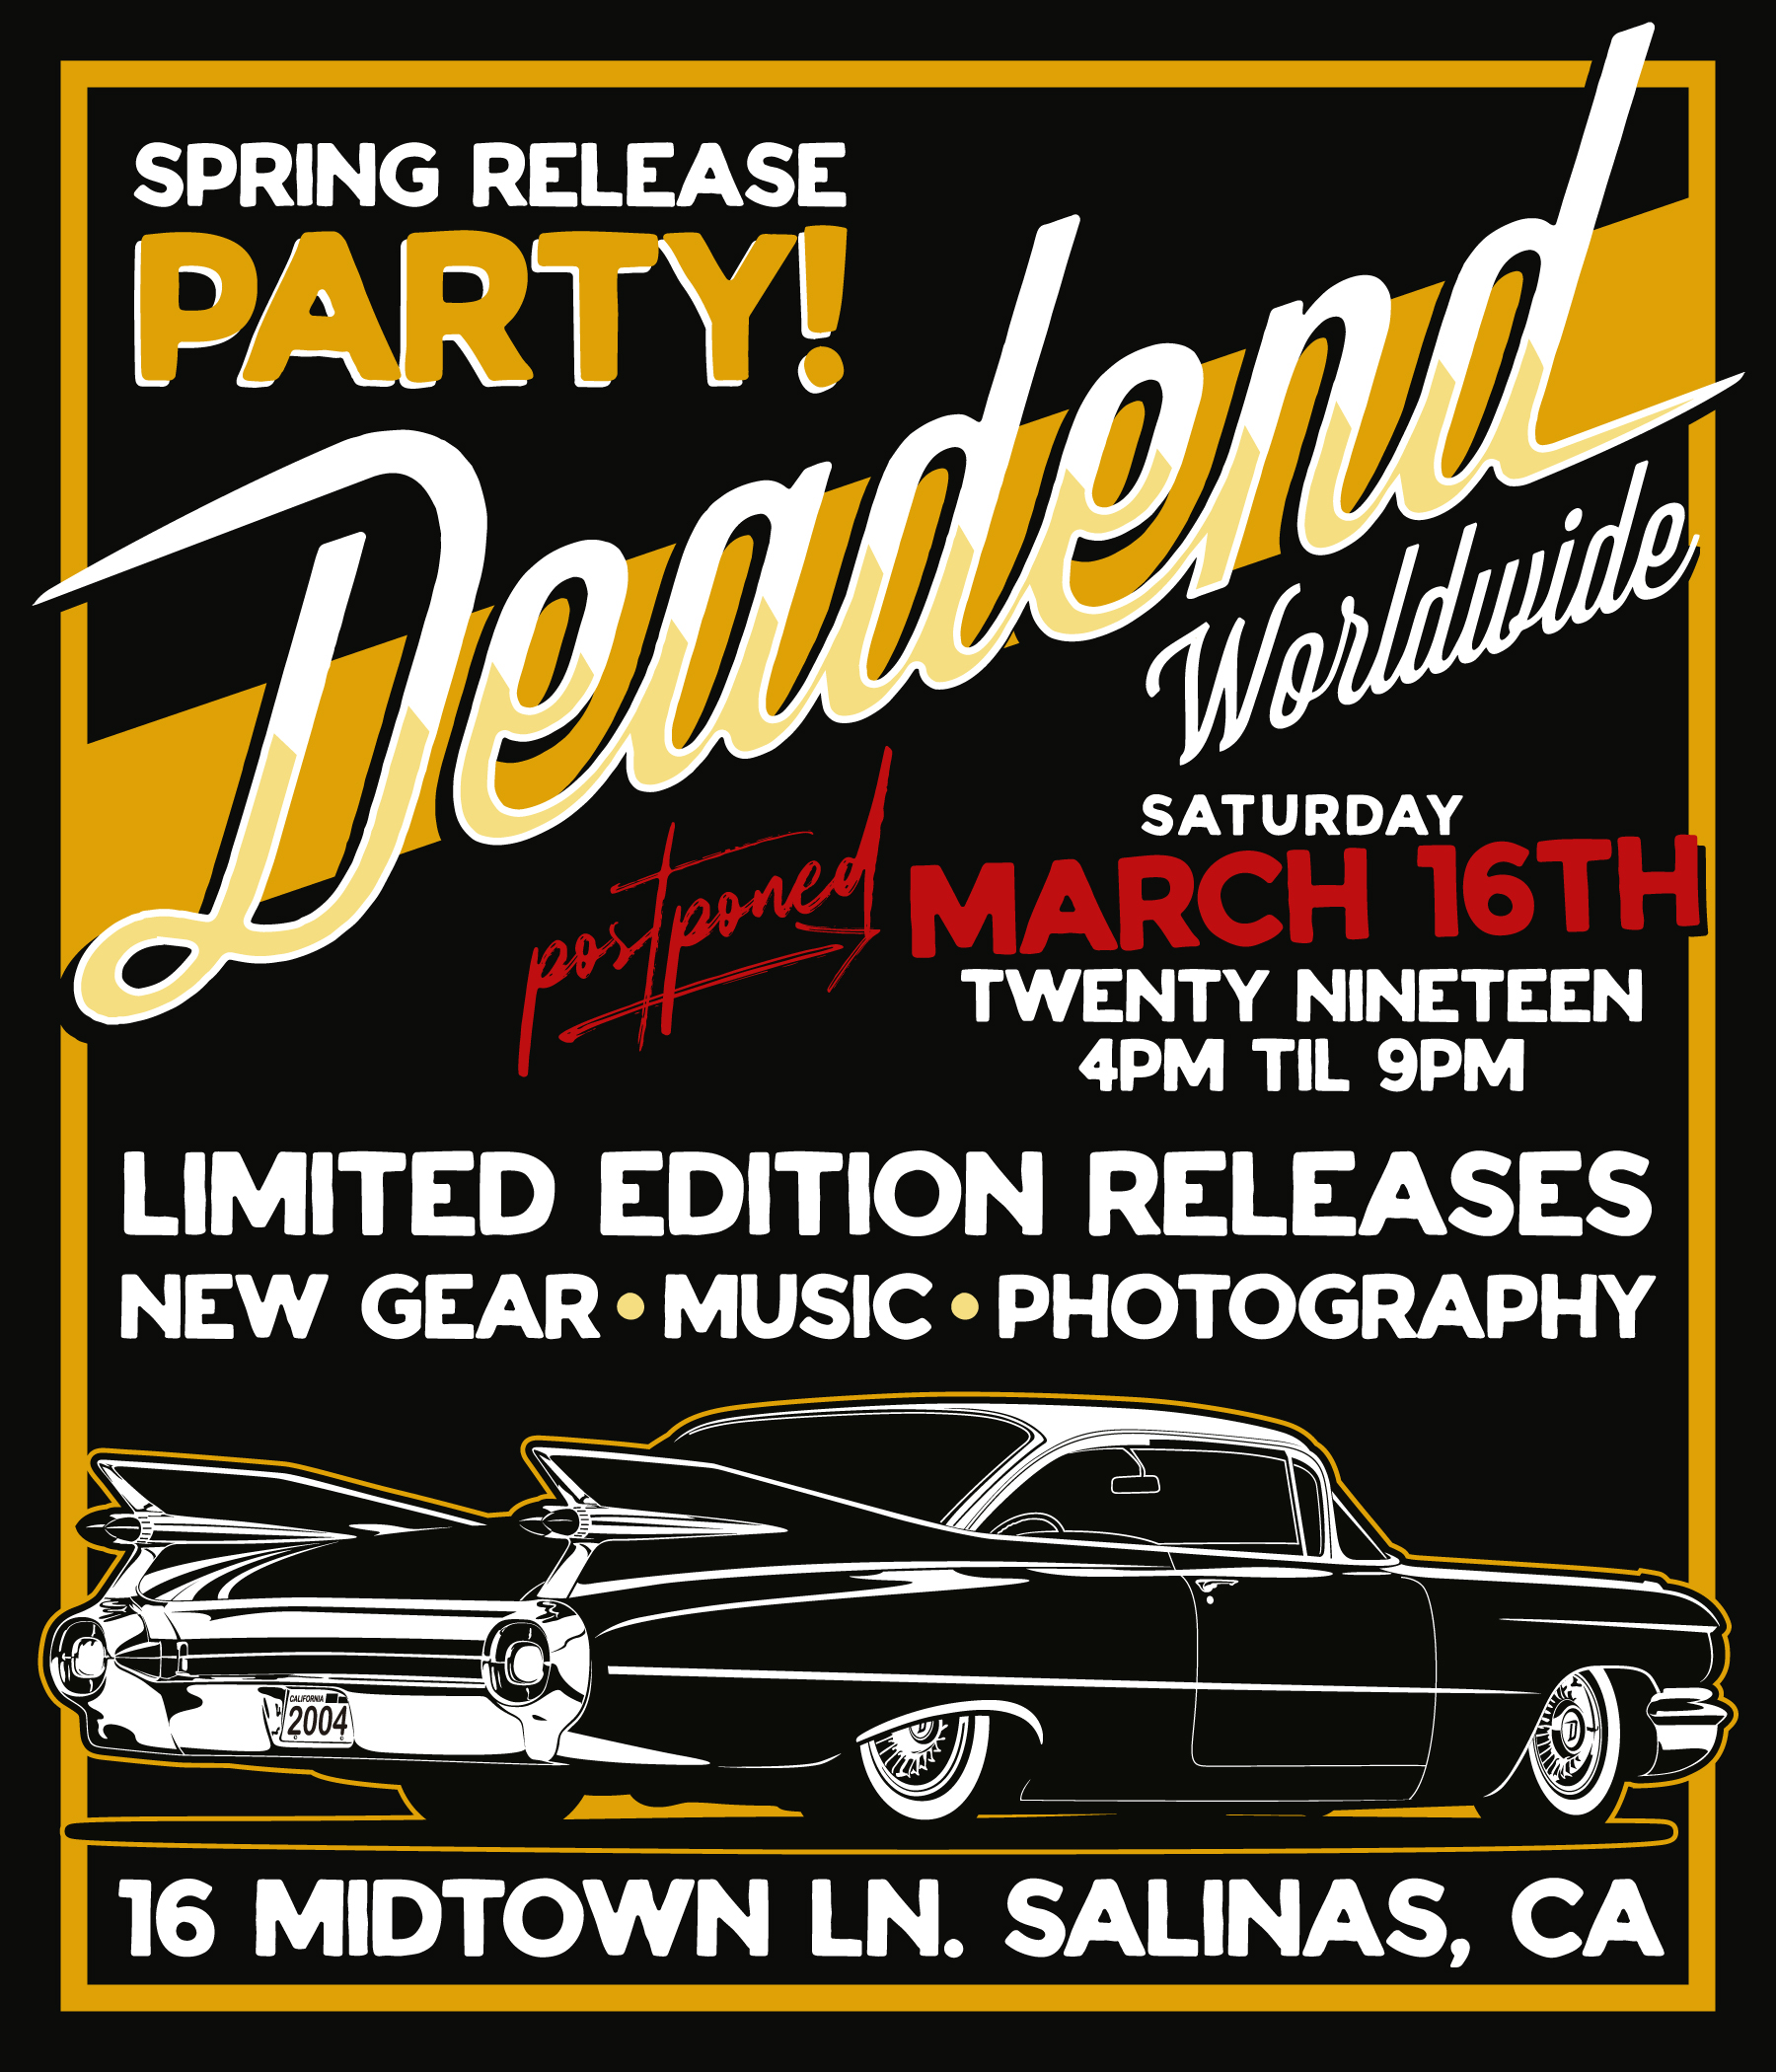 Our next party is going down March 16, 2019 at the Deadend Magazine store.